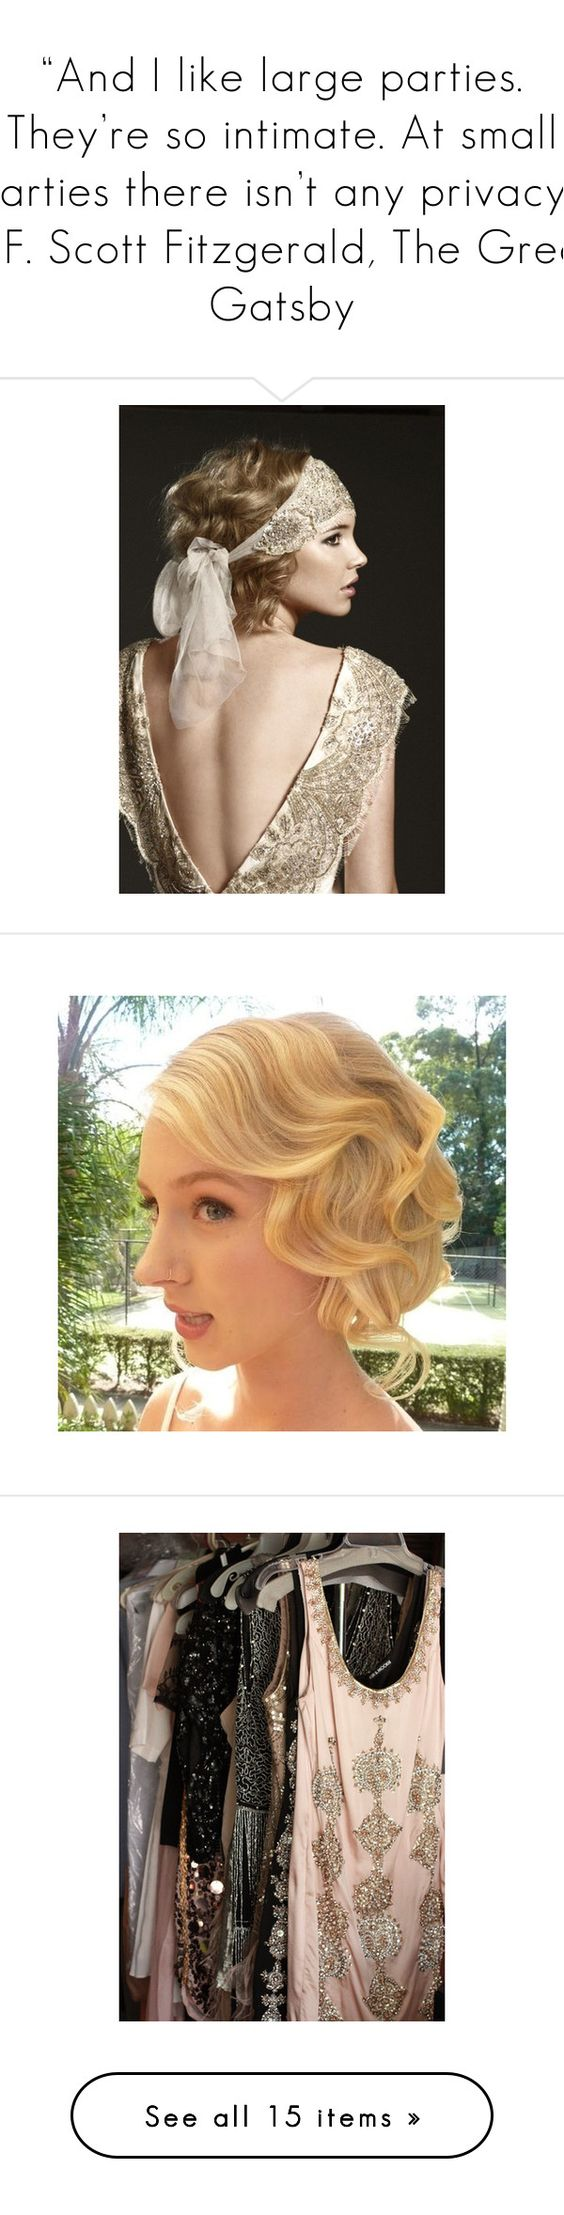 """""""""""And I like large parties. They're so intimate. At small parties there isn't any privacy."""" ― F. Scott Fitzgerald, The Great Gatsby"""" by storycosmicjasmine ❤ liked on Polyvore featuring flapper, hair, backgrounds, pictures, photos, pics, accessories, hair accessories, people and 1920s headband"""